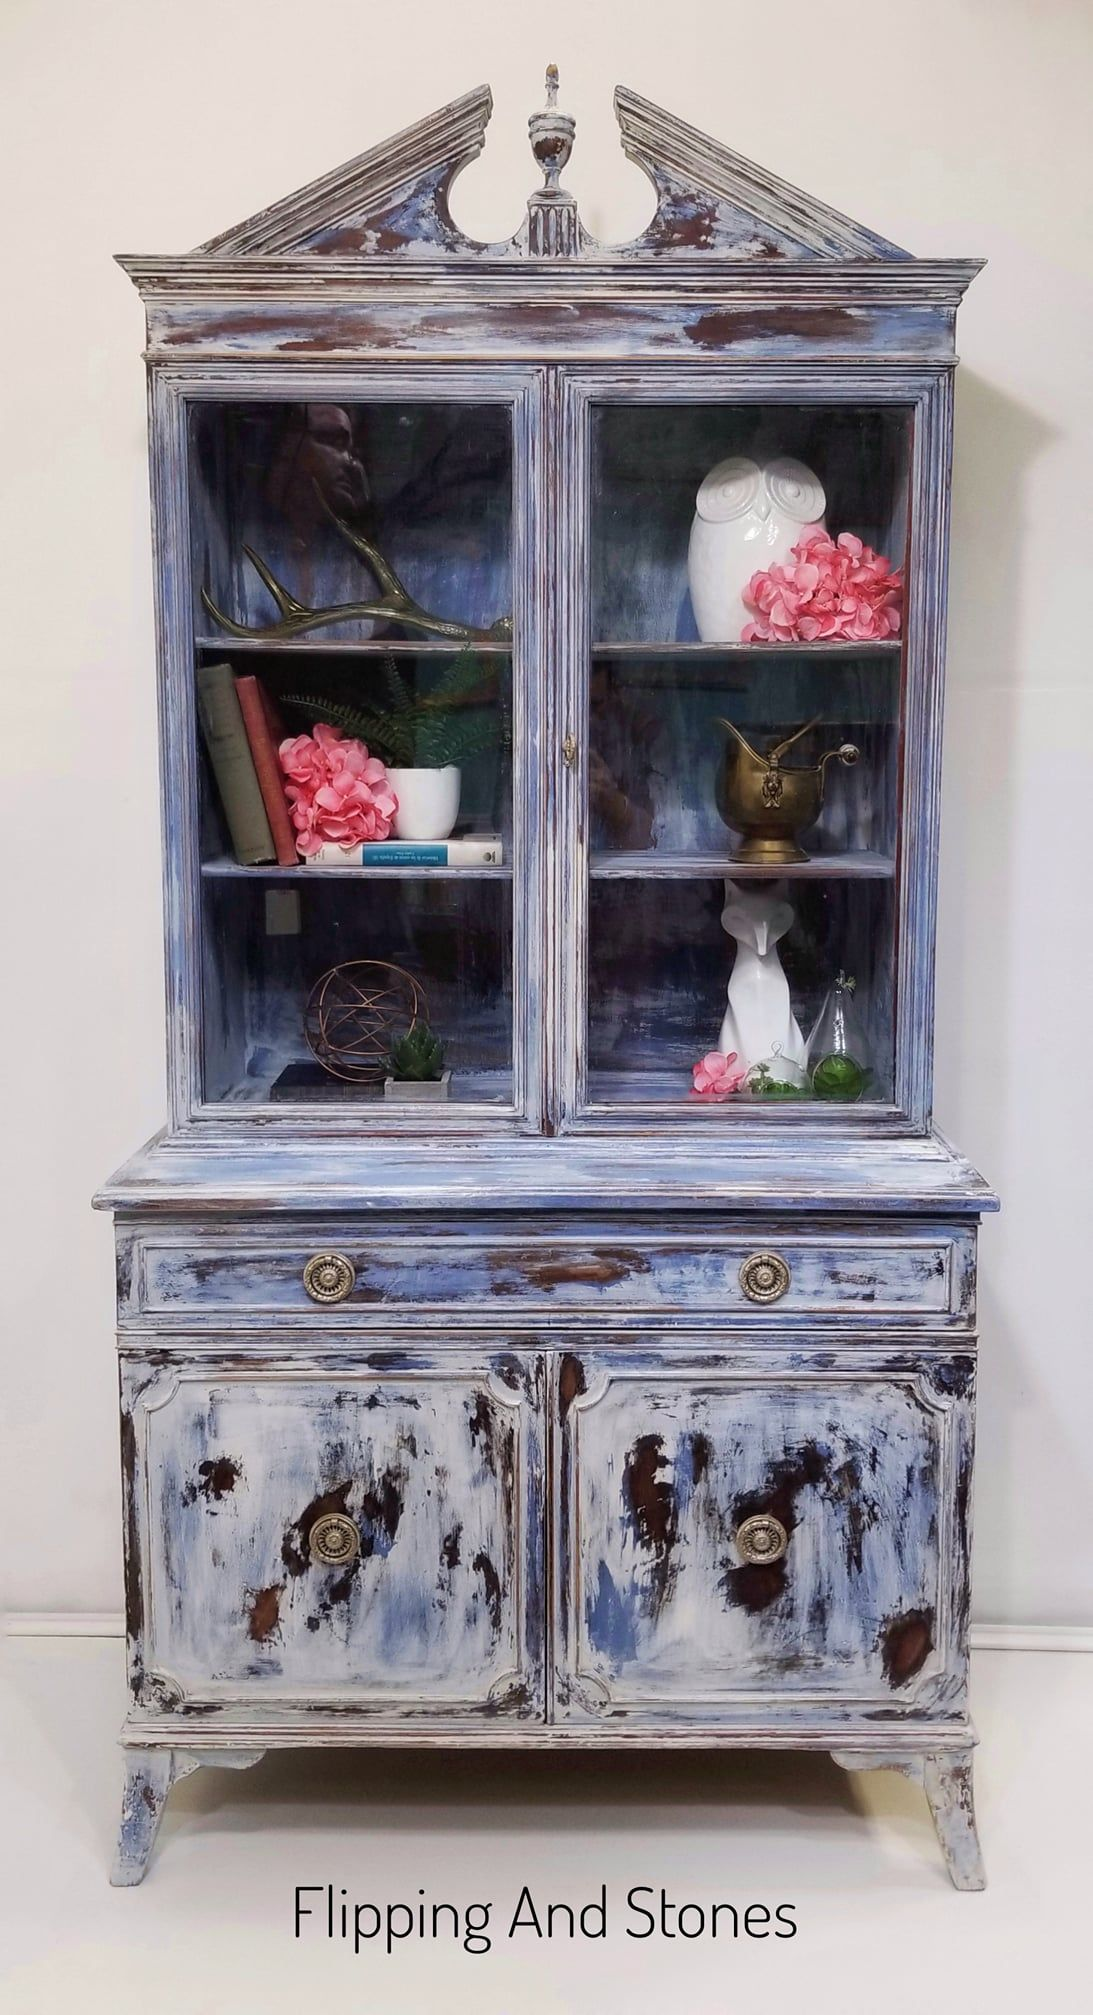 Custom Painted Hutch customer wanted the Anthropology look which